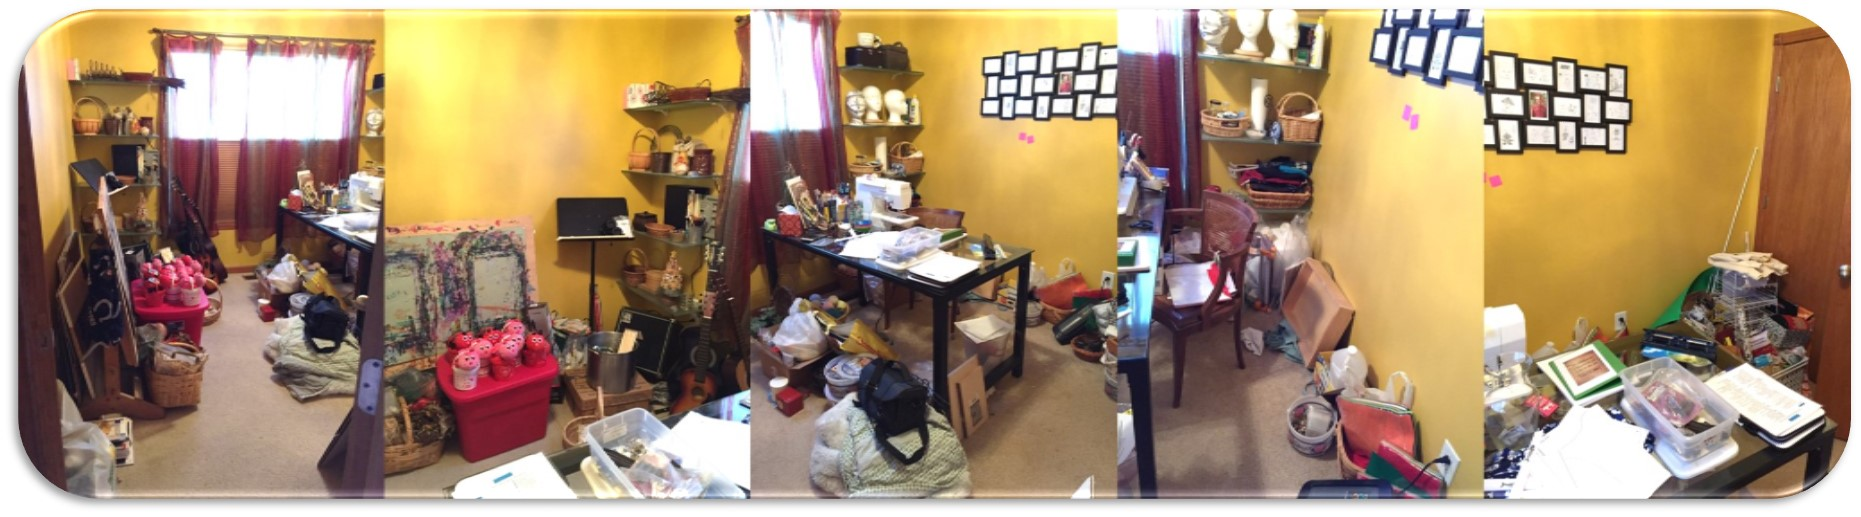 studio-before-collage